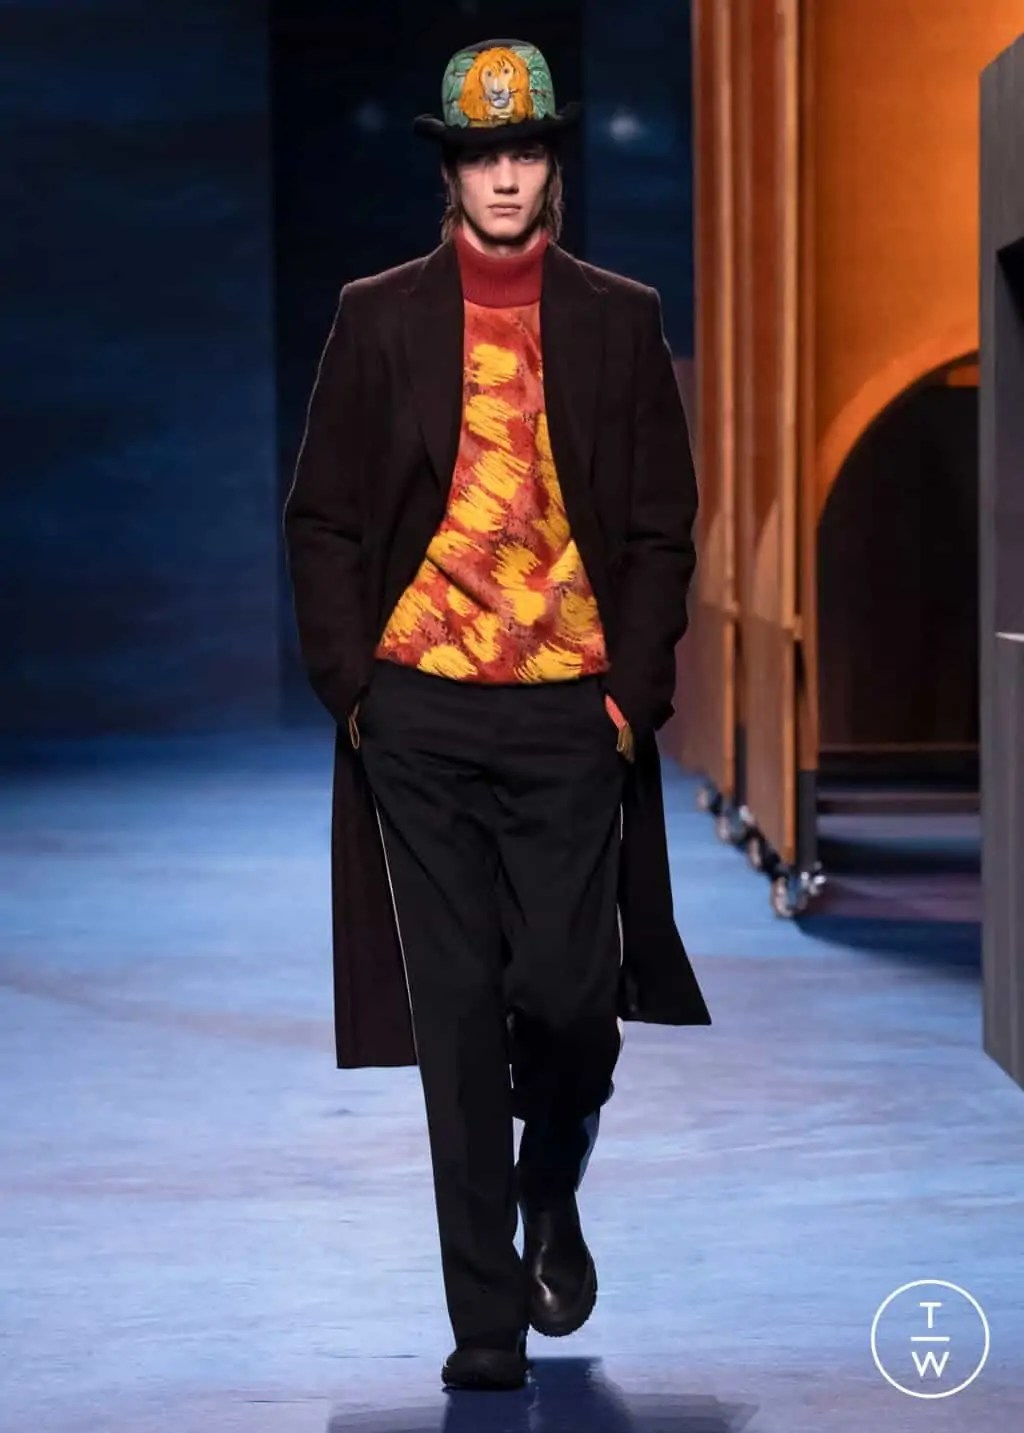 15 FALL/WINTER TRENDS FOR MEN IN 2021 475